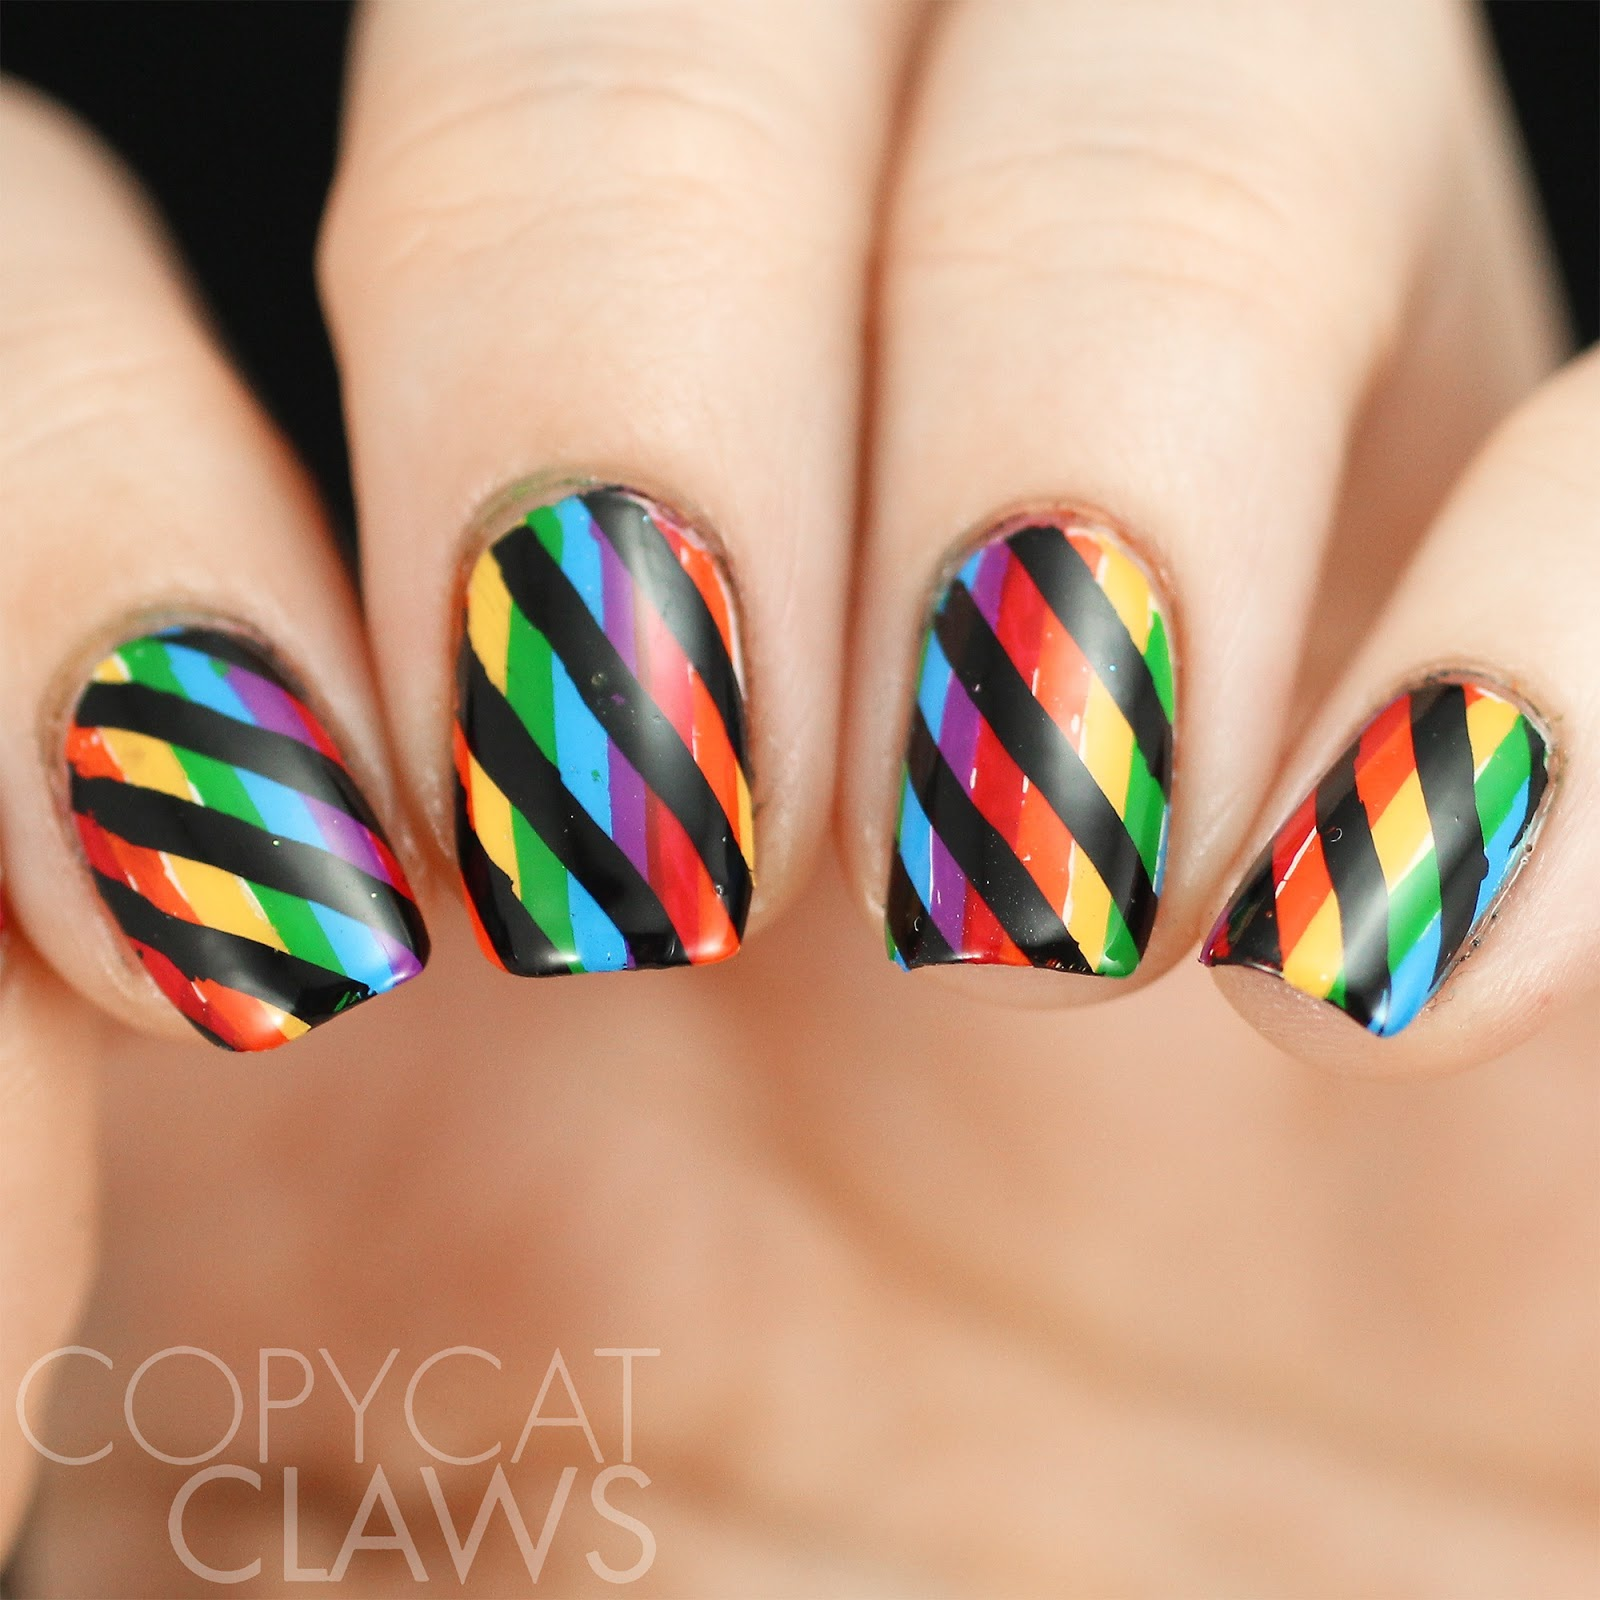 Copycat Claws Blue Color Block Nail Art: Copycat Claws: Nail Crazies Unite